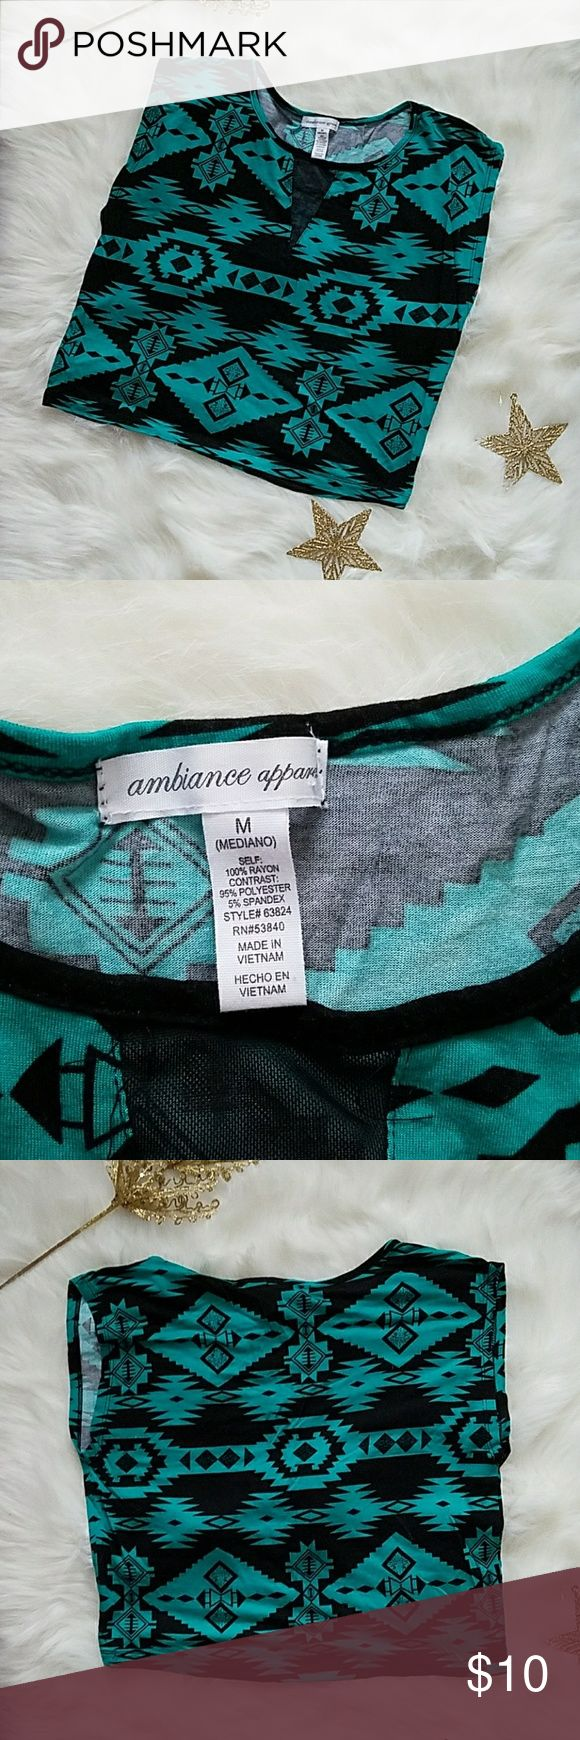 Ambiance Apparel women medium Azteca crop top This is a cute crop top that has black and green Azteca patterns on it. It has a classic neckline with short sleeves. It falls about 18 inches in length. It is in perfect condition. Ambiance Apparel Tops Crop Tops